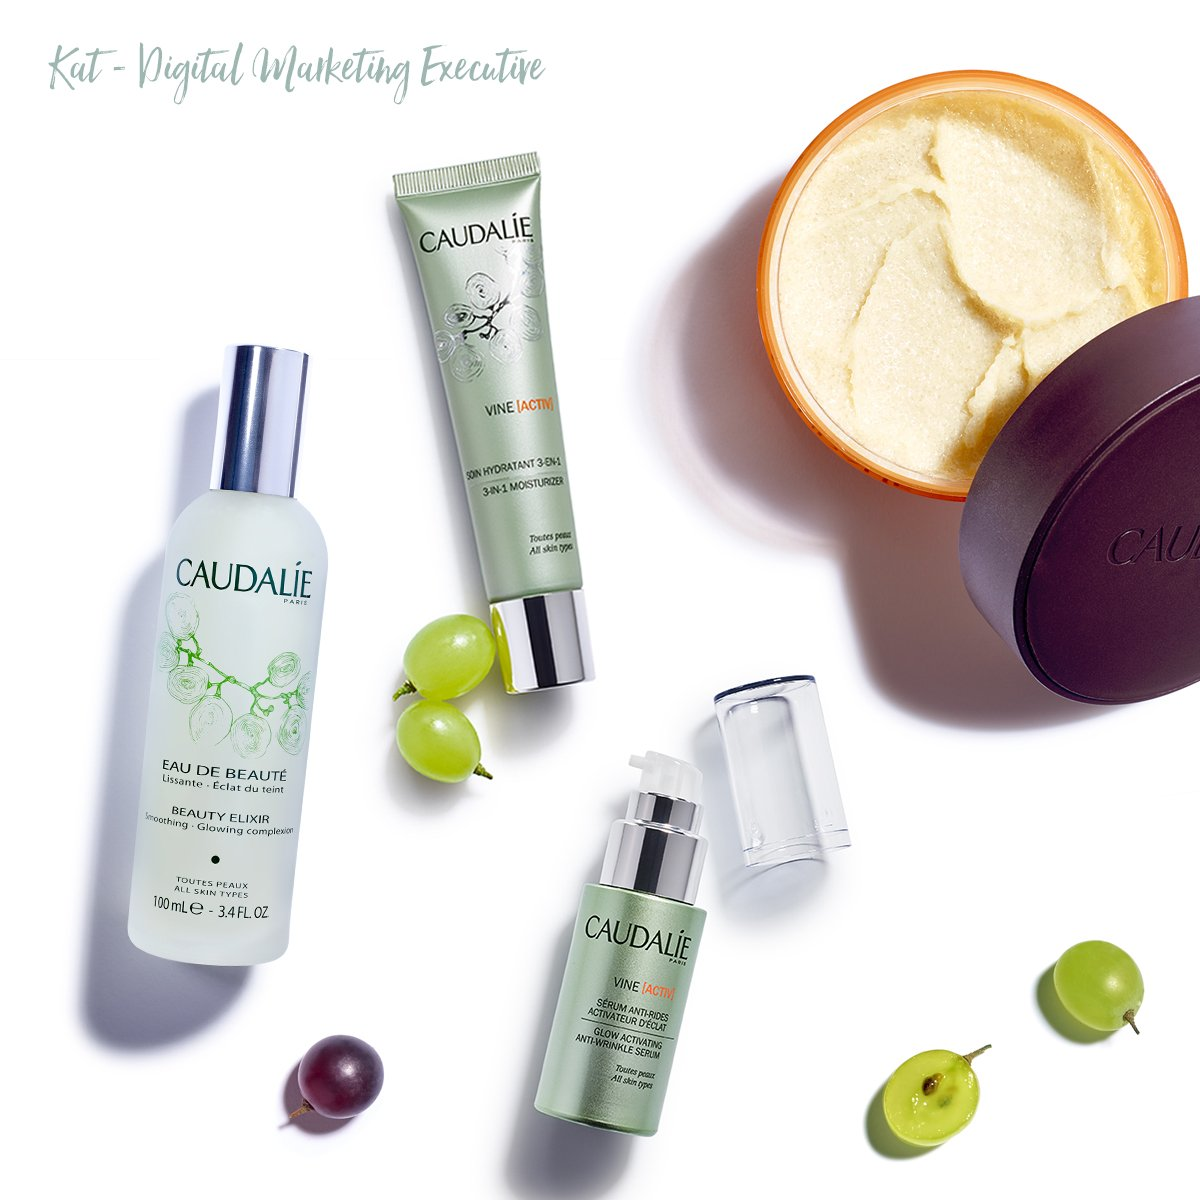 Caudalie Uk On Twitter Ever Wondered What Products We At